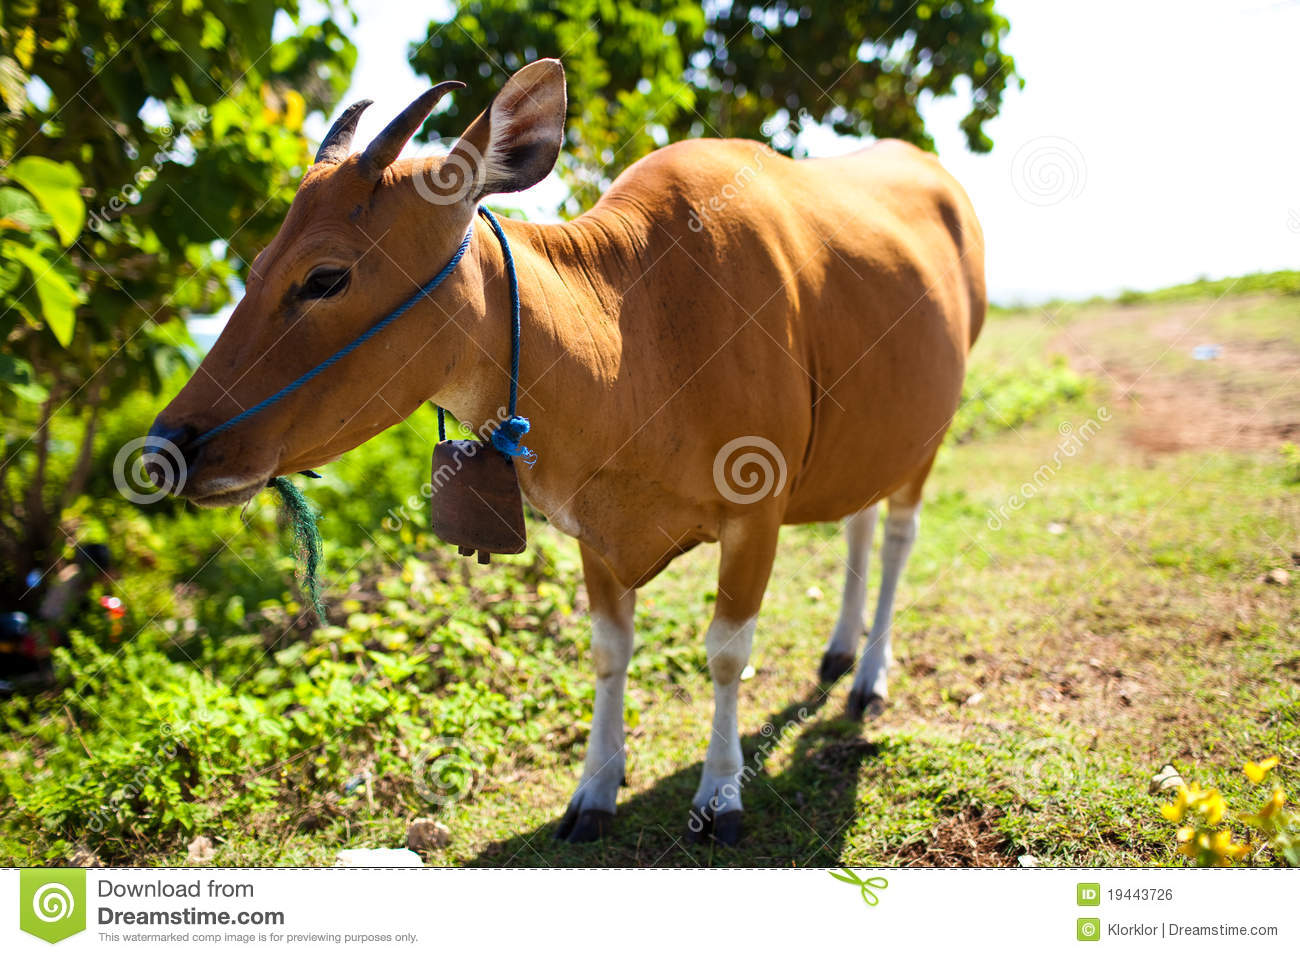 An analysis of how sacred a cow is in the religion of hinduism